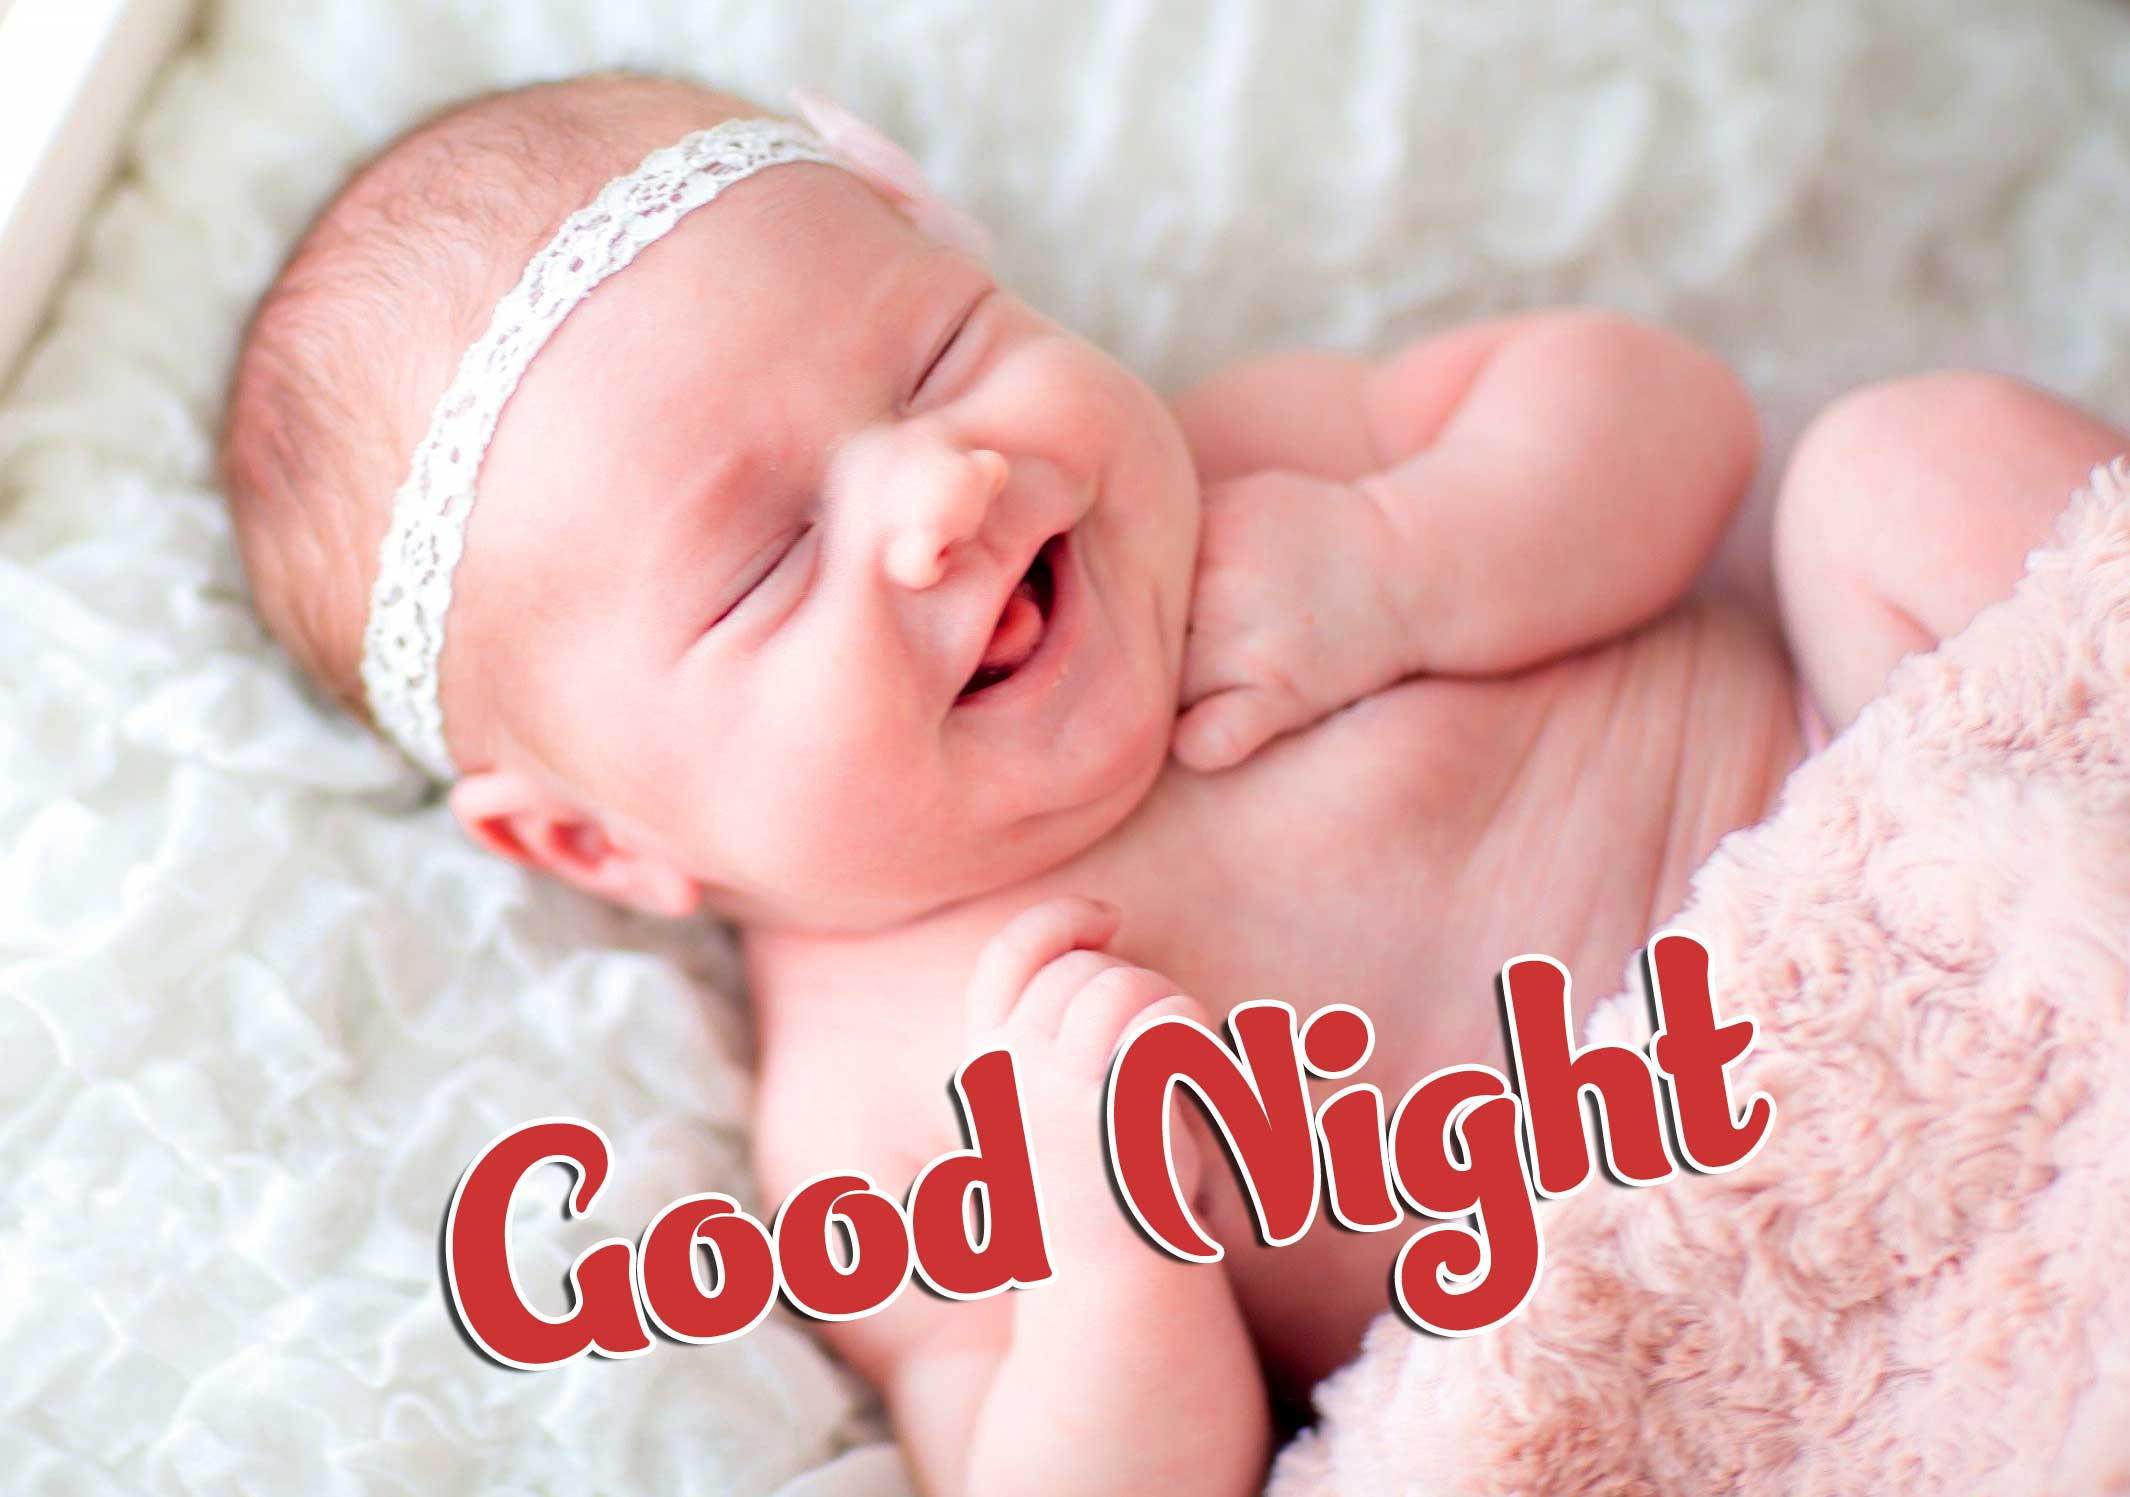 Cute Babies Good Night ImagesPics pictures Download